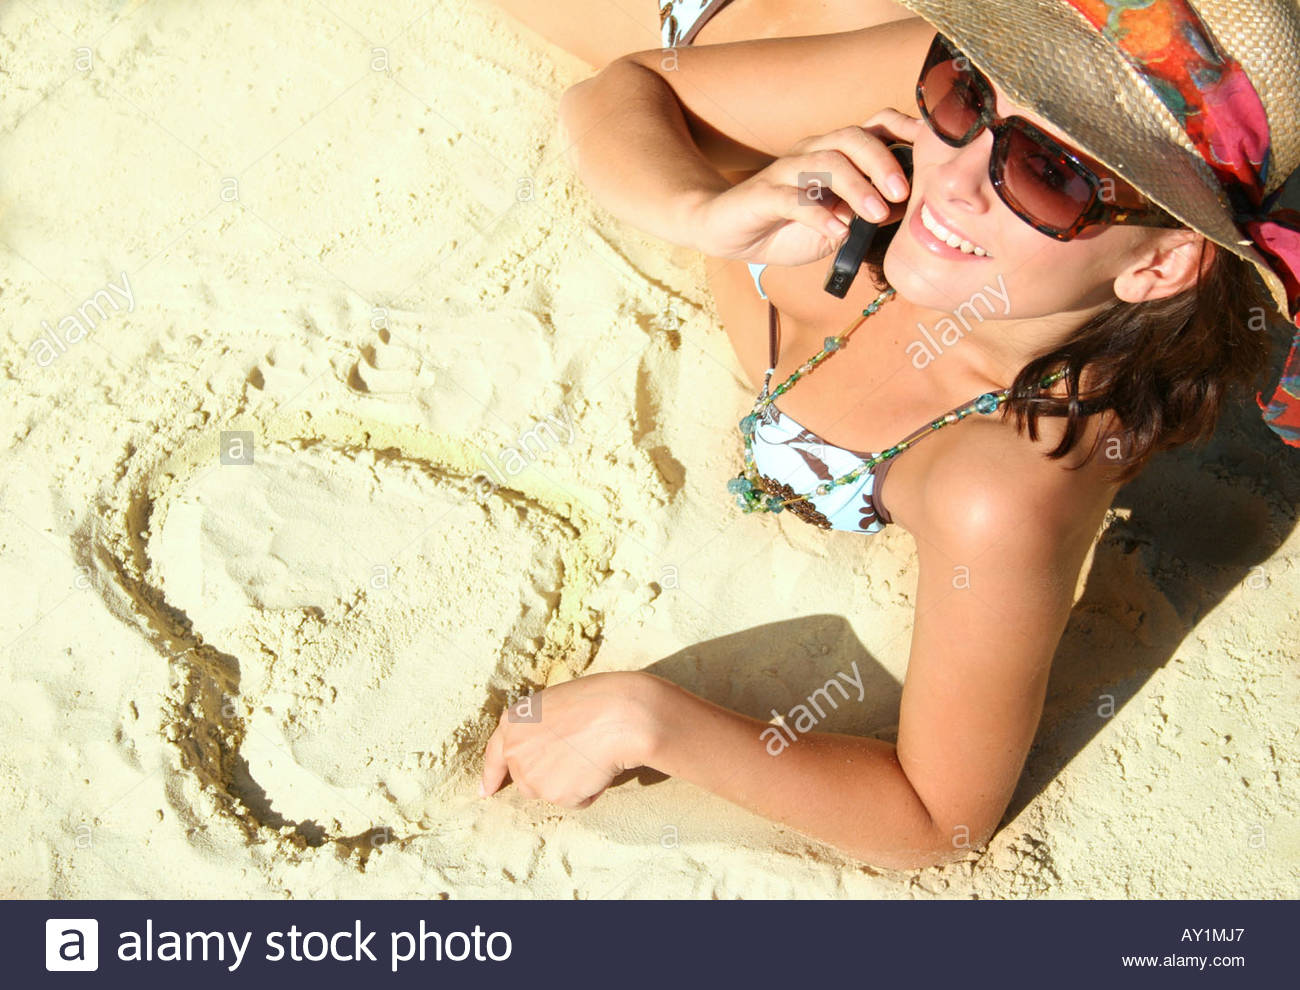 woman at the beach - Stock Image